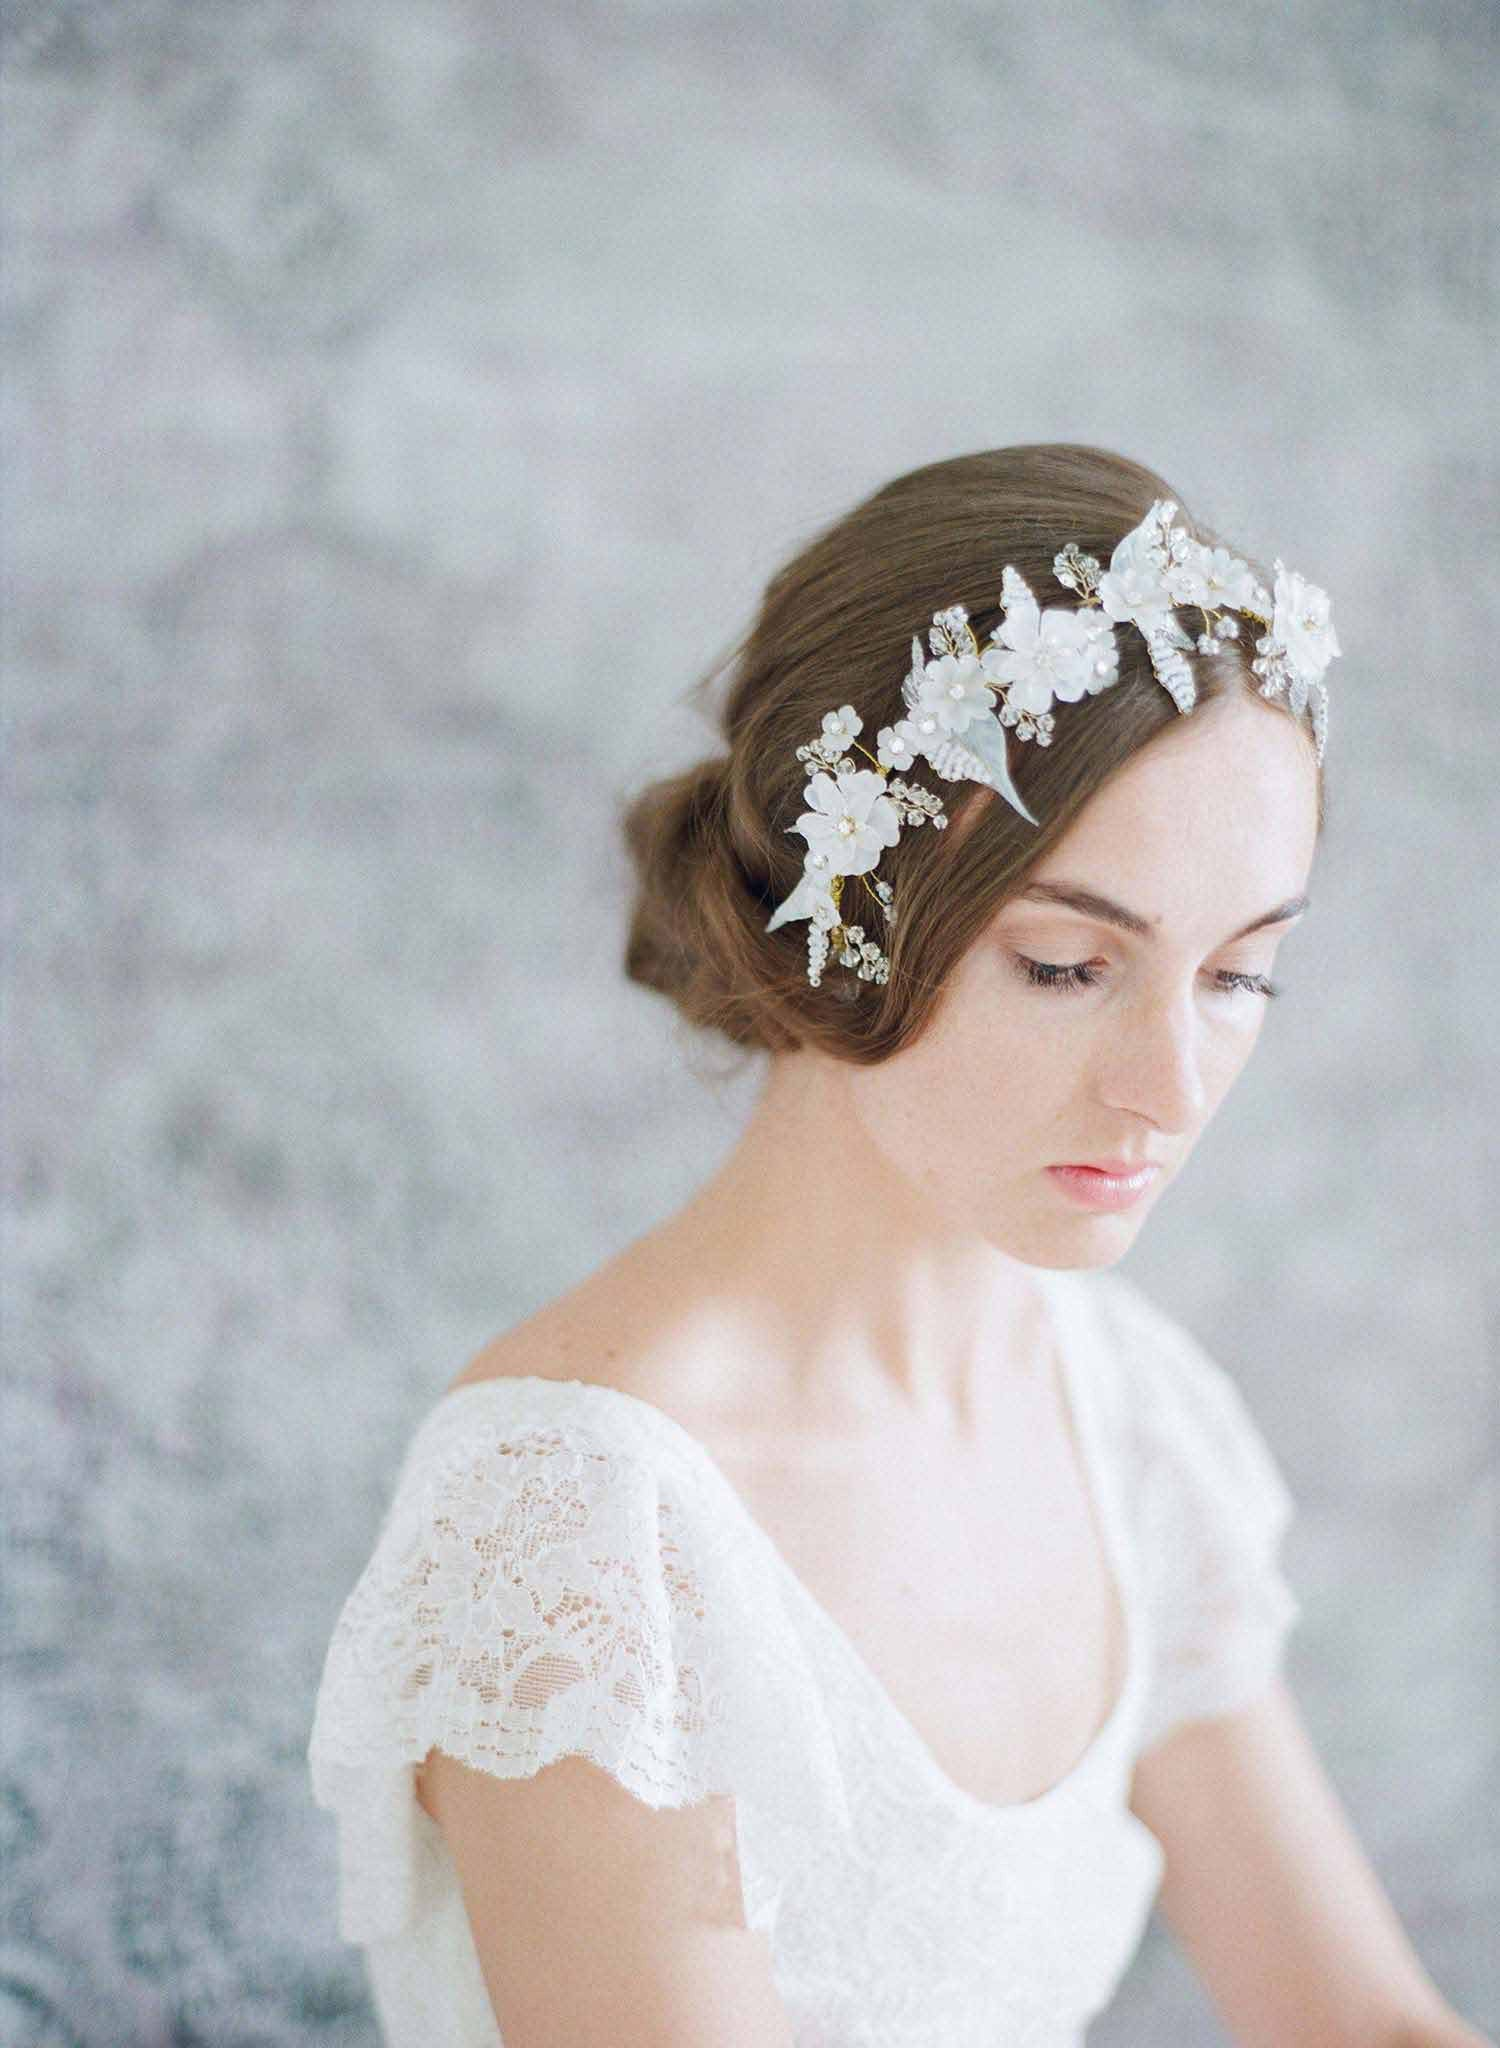 Lightness and frost floral headpiece - Style #733